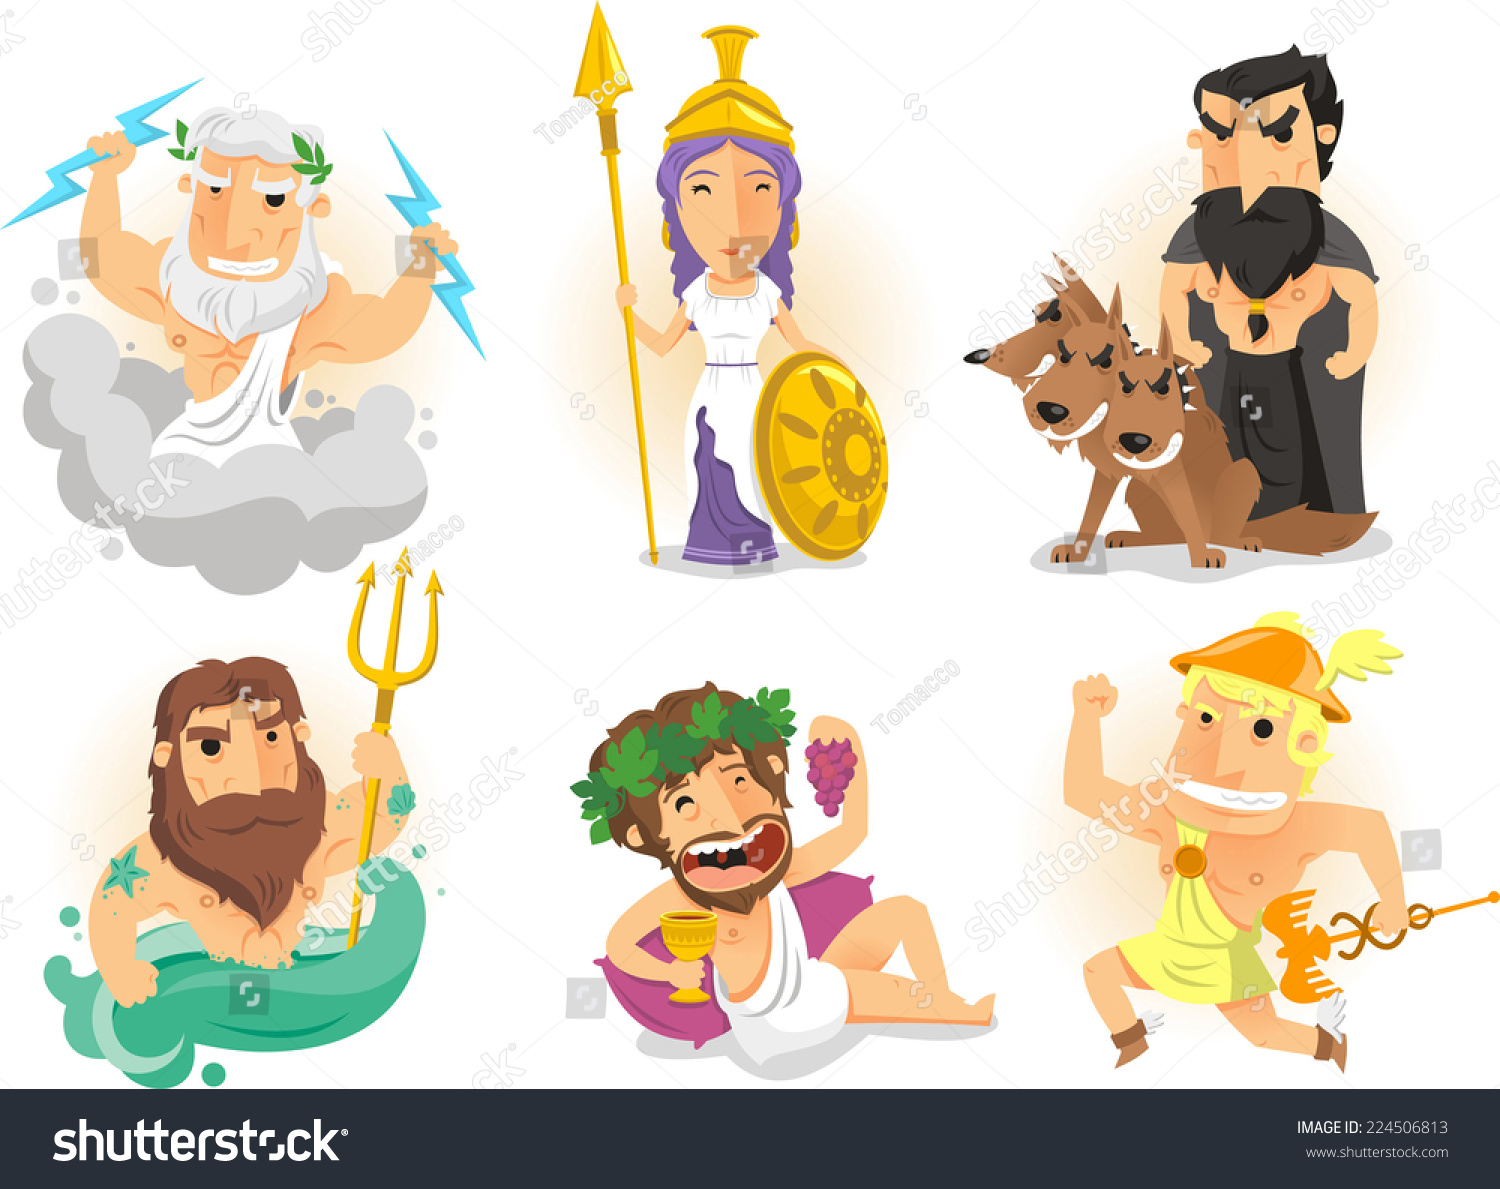 greek gods ancient greece myths cartoon stock vector 224506813